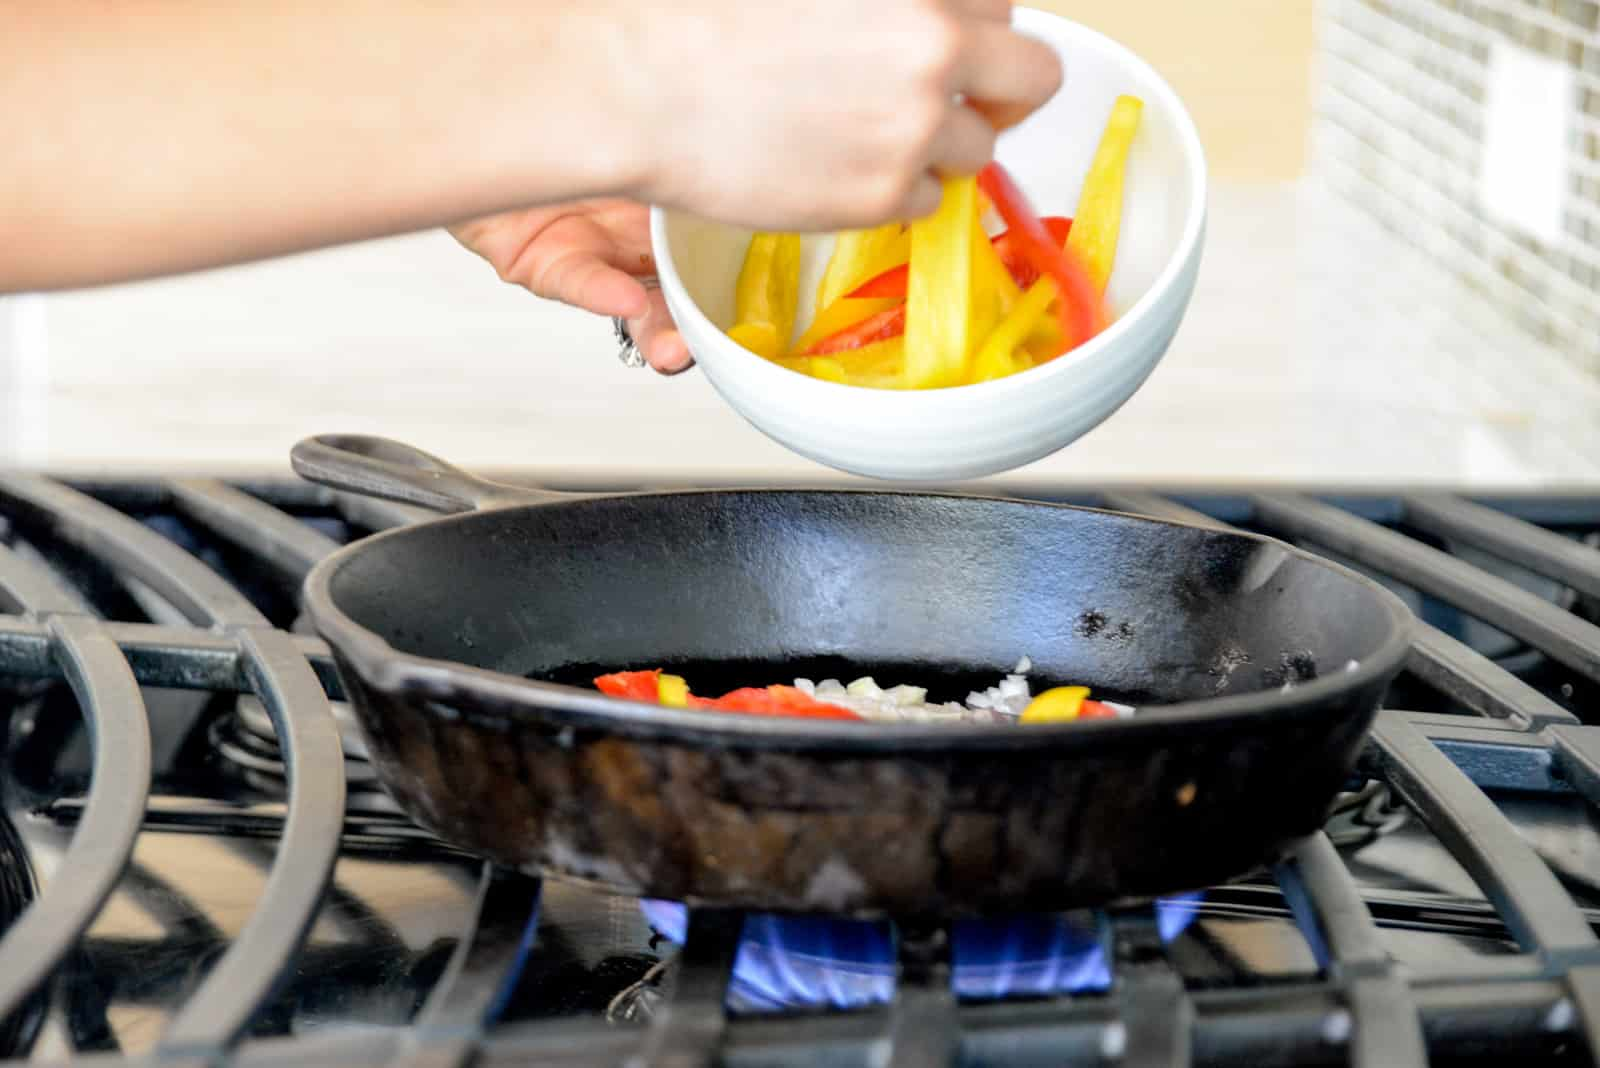 woman's hand dropping sliced bell peppers into a cast iron skillet over a range